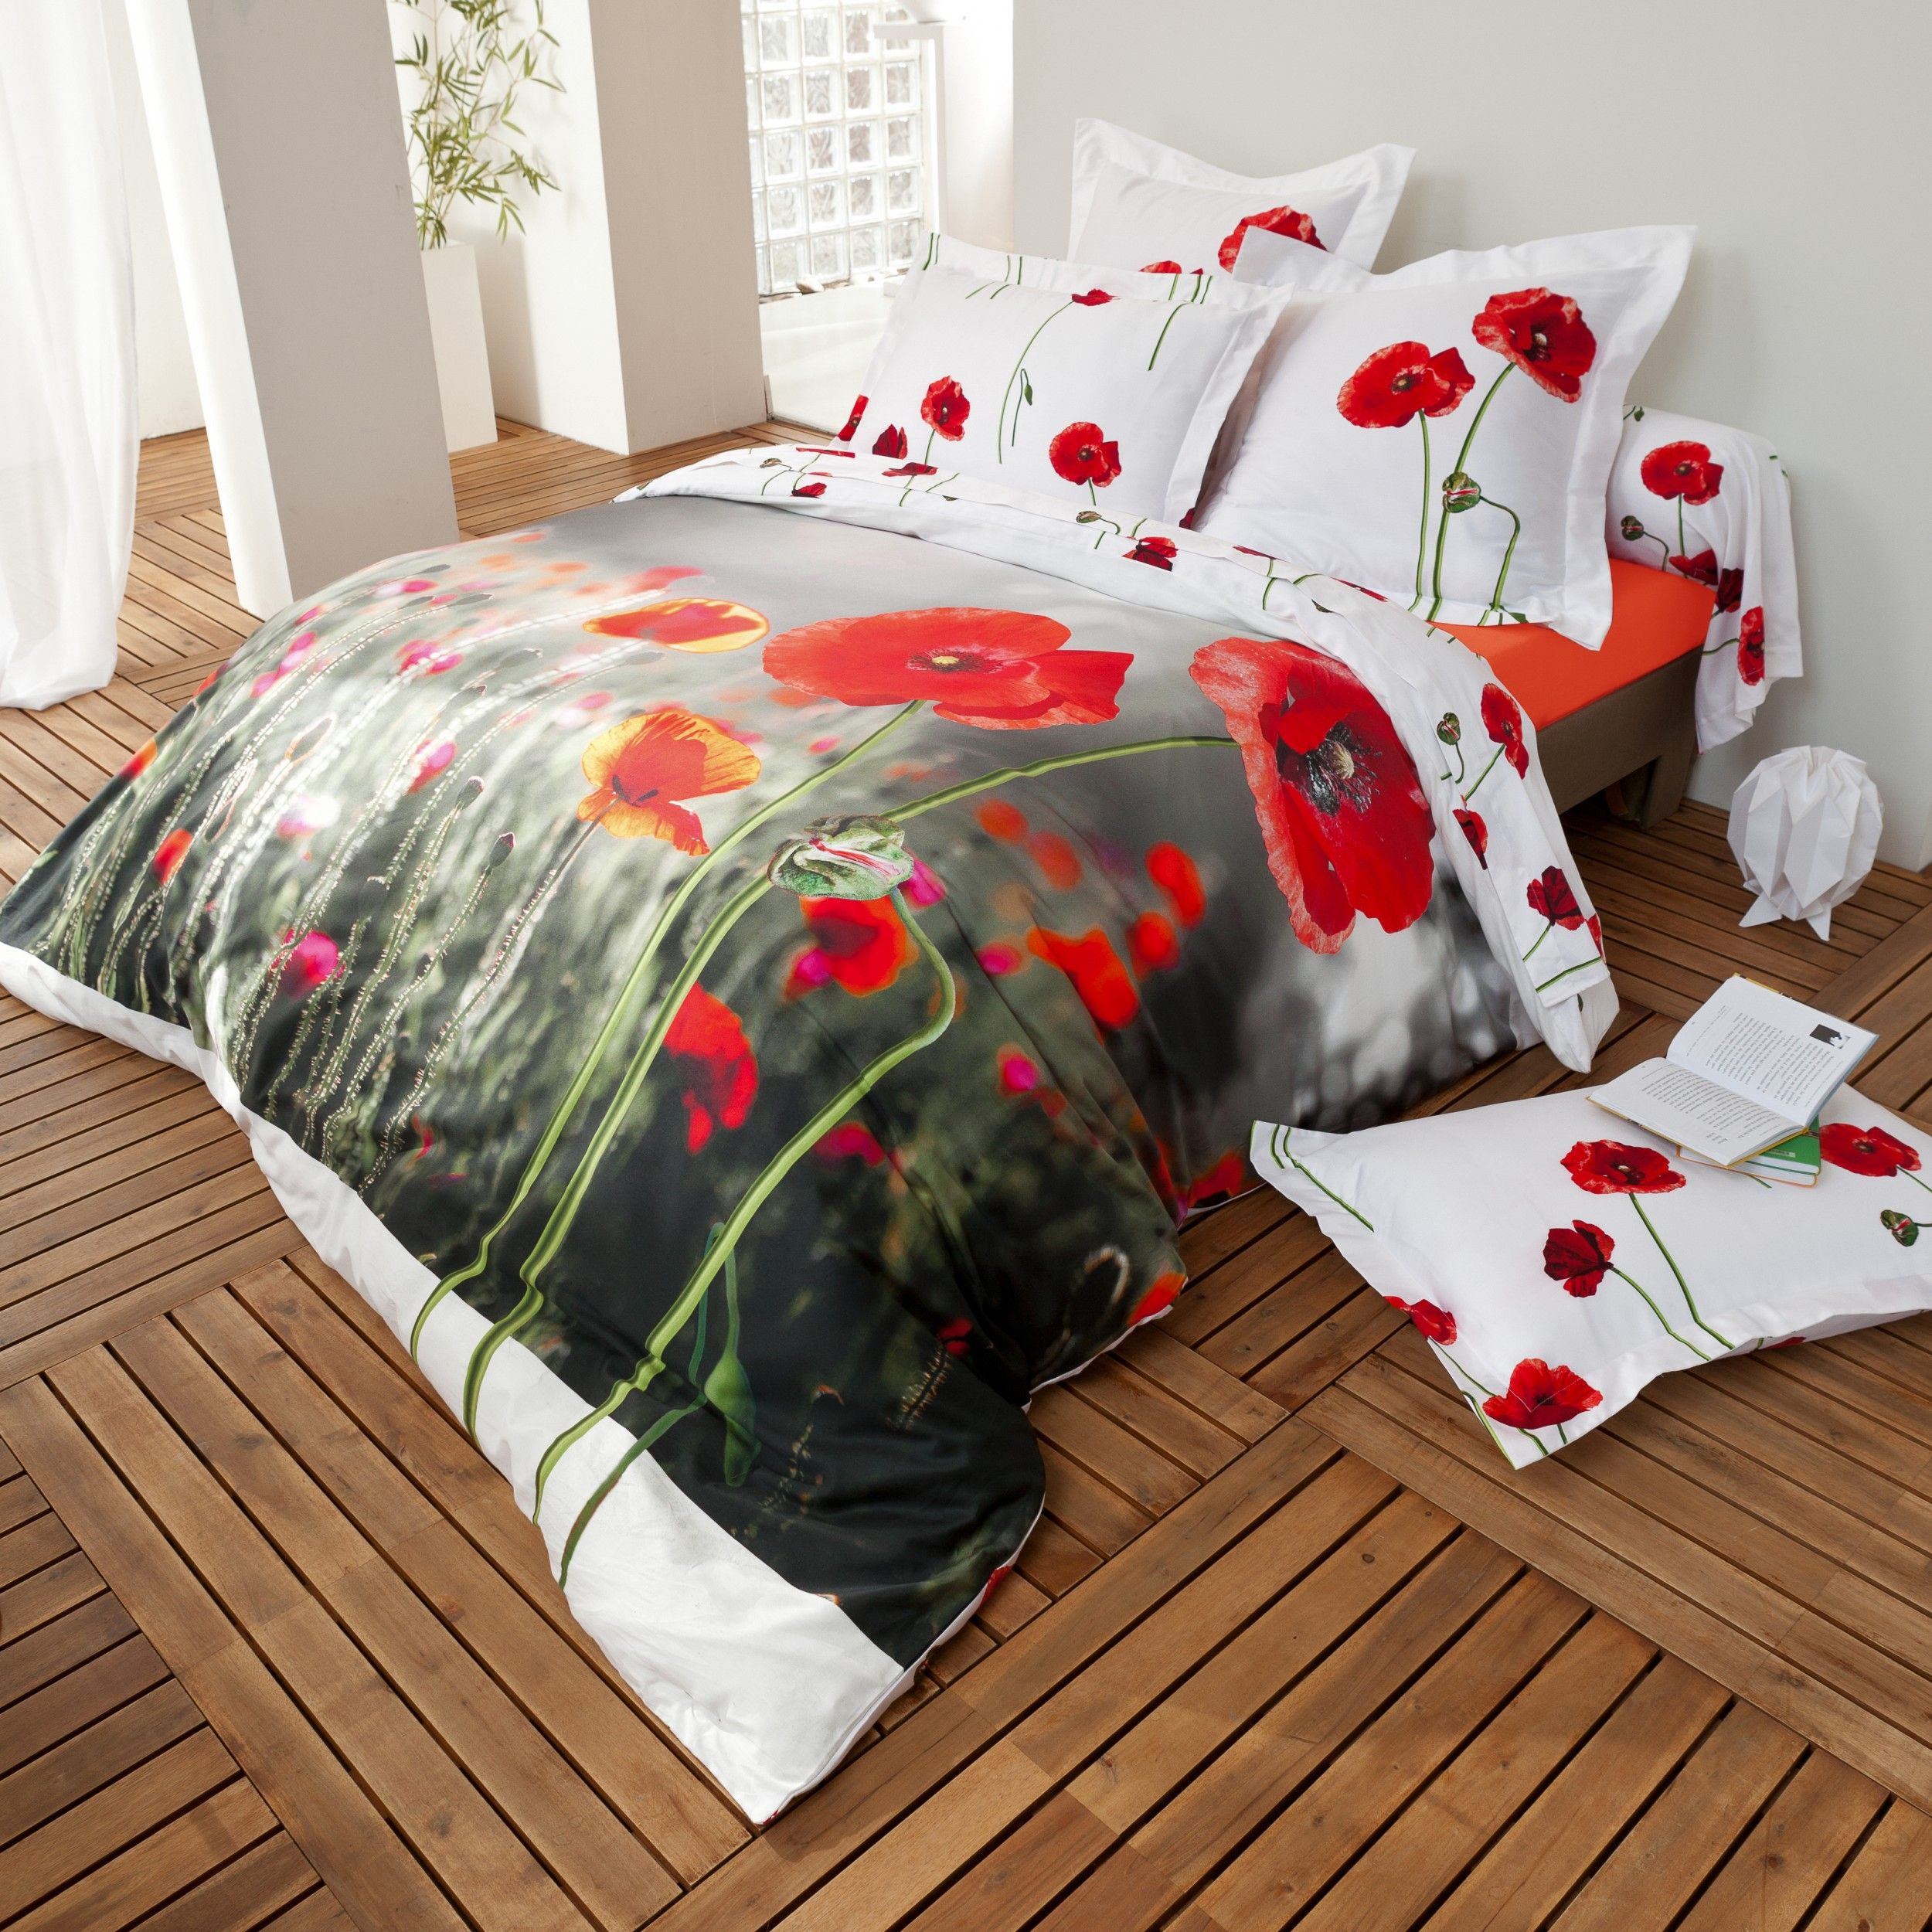 coquelicot linge de lit fleuri rouge d co fleurie pinterest coquelicots linge de lit et lit. Black Bedroom Furniture Sets. Home Design Ideas